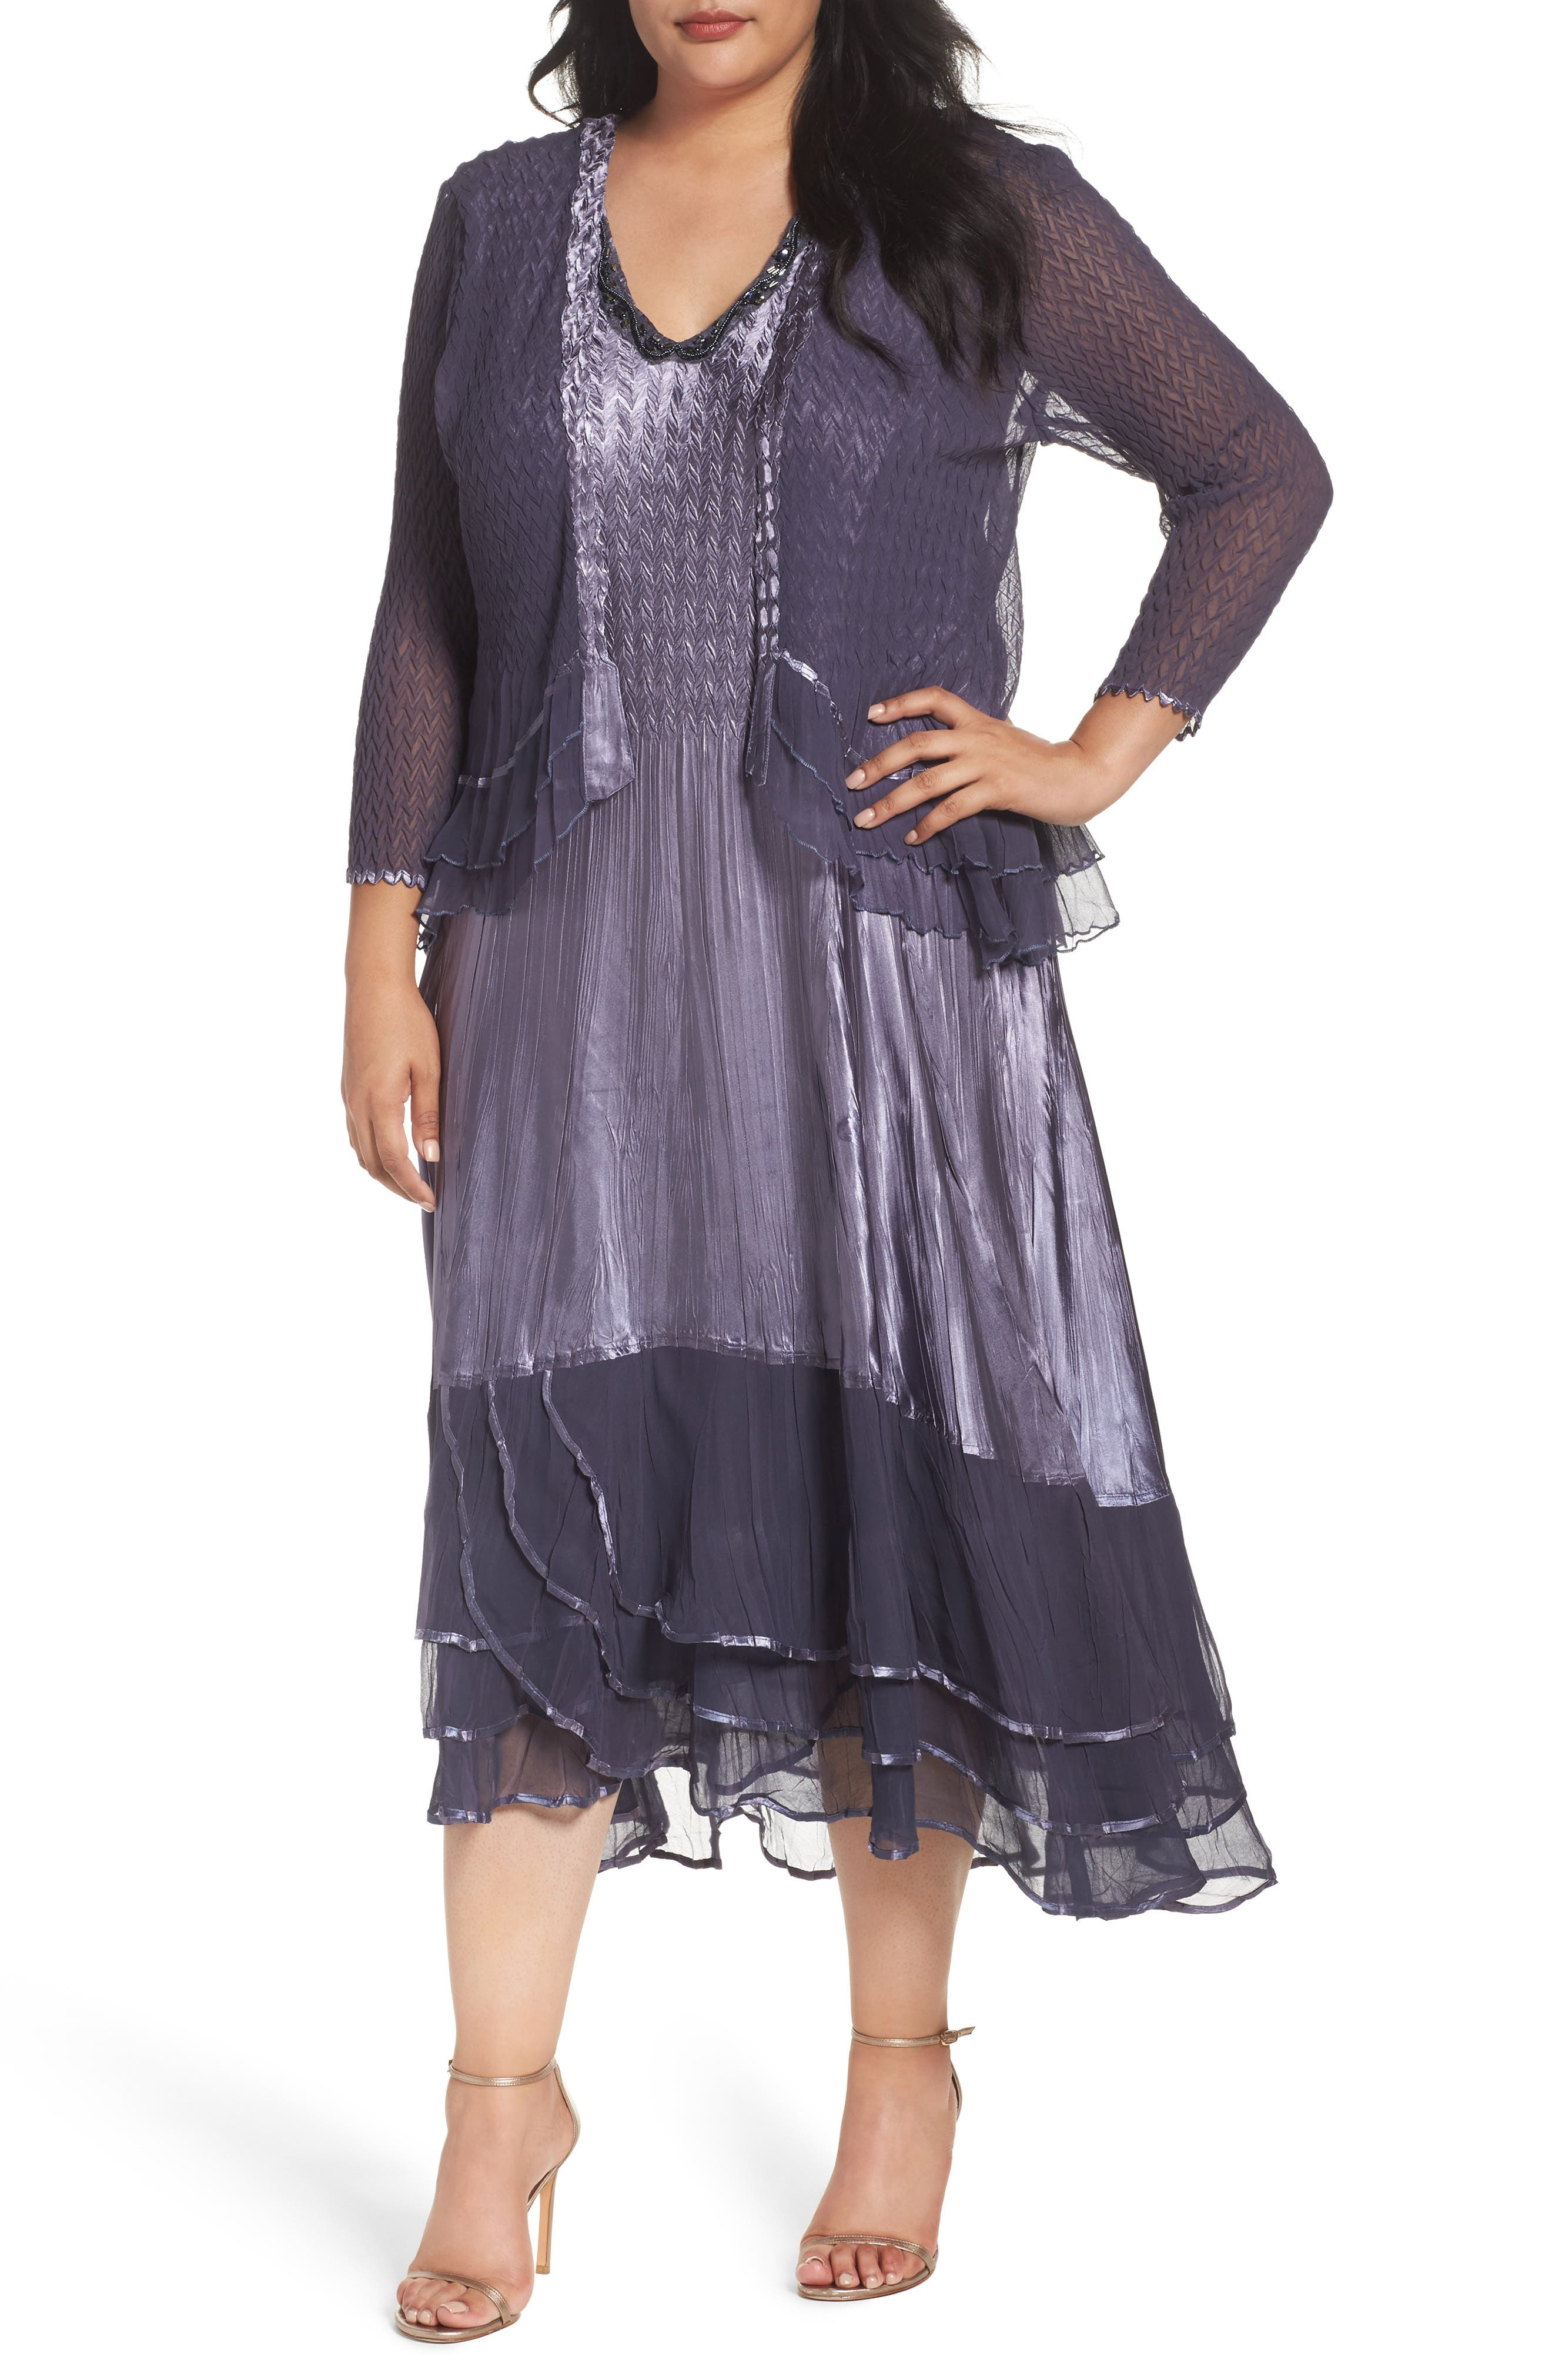 Komarov Embellished Tiered Dress with Jacket (Plus Size)